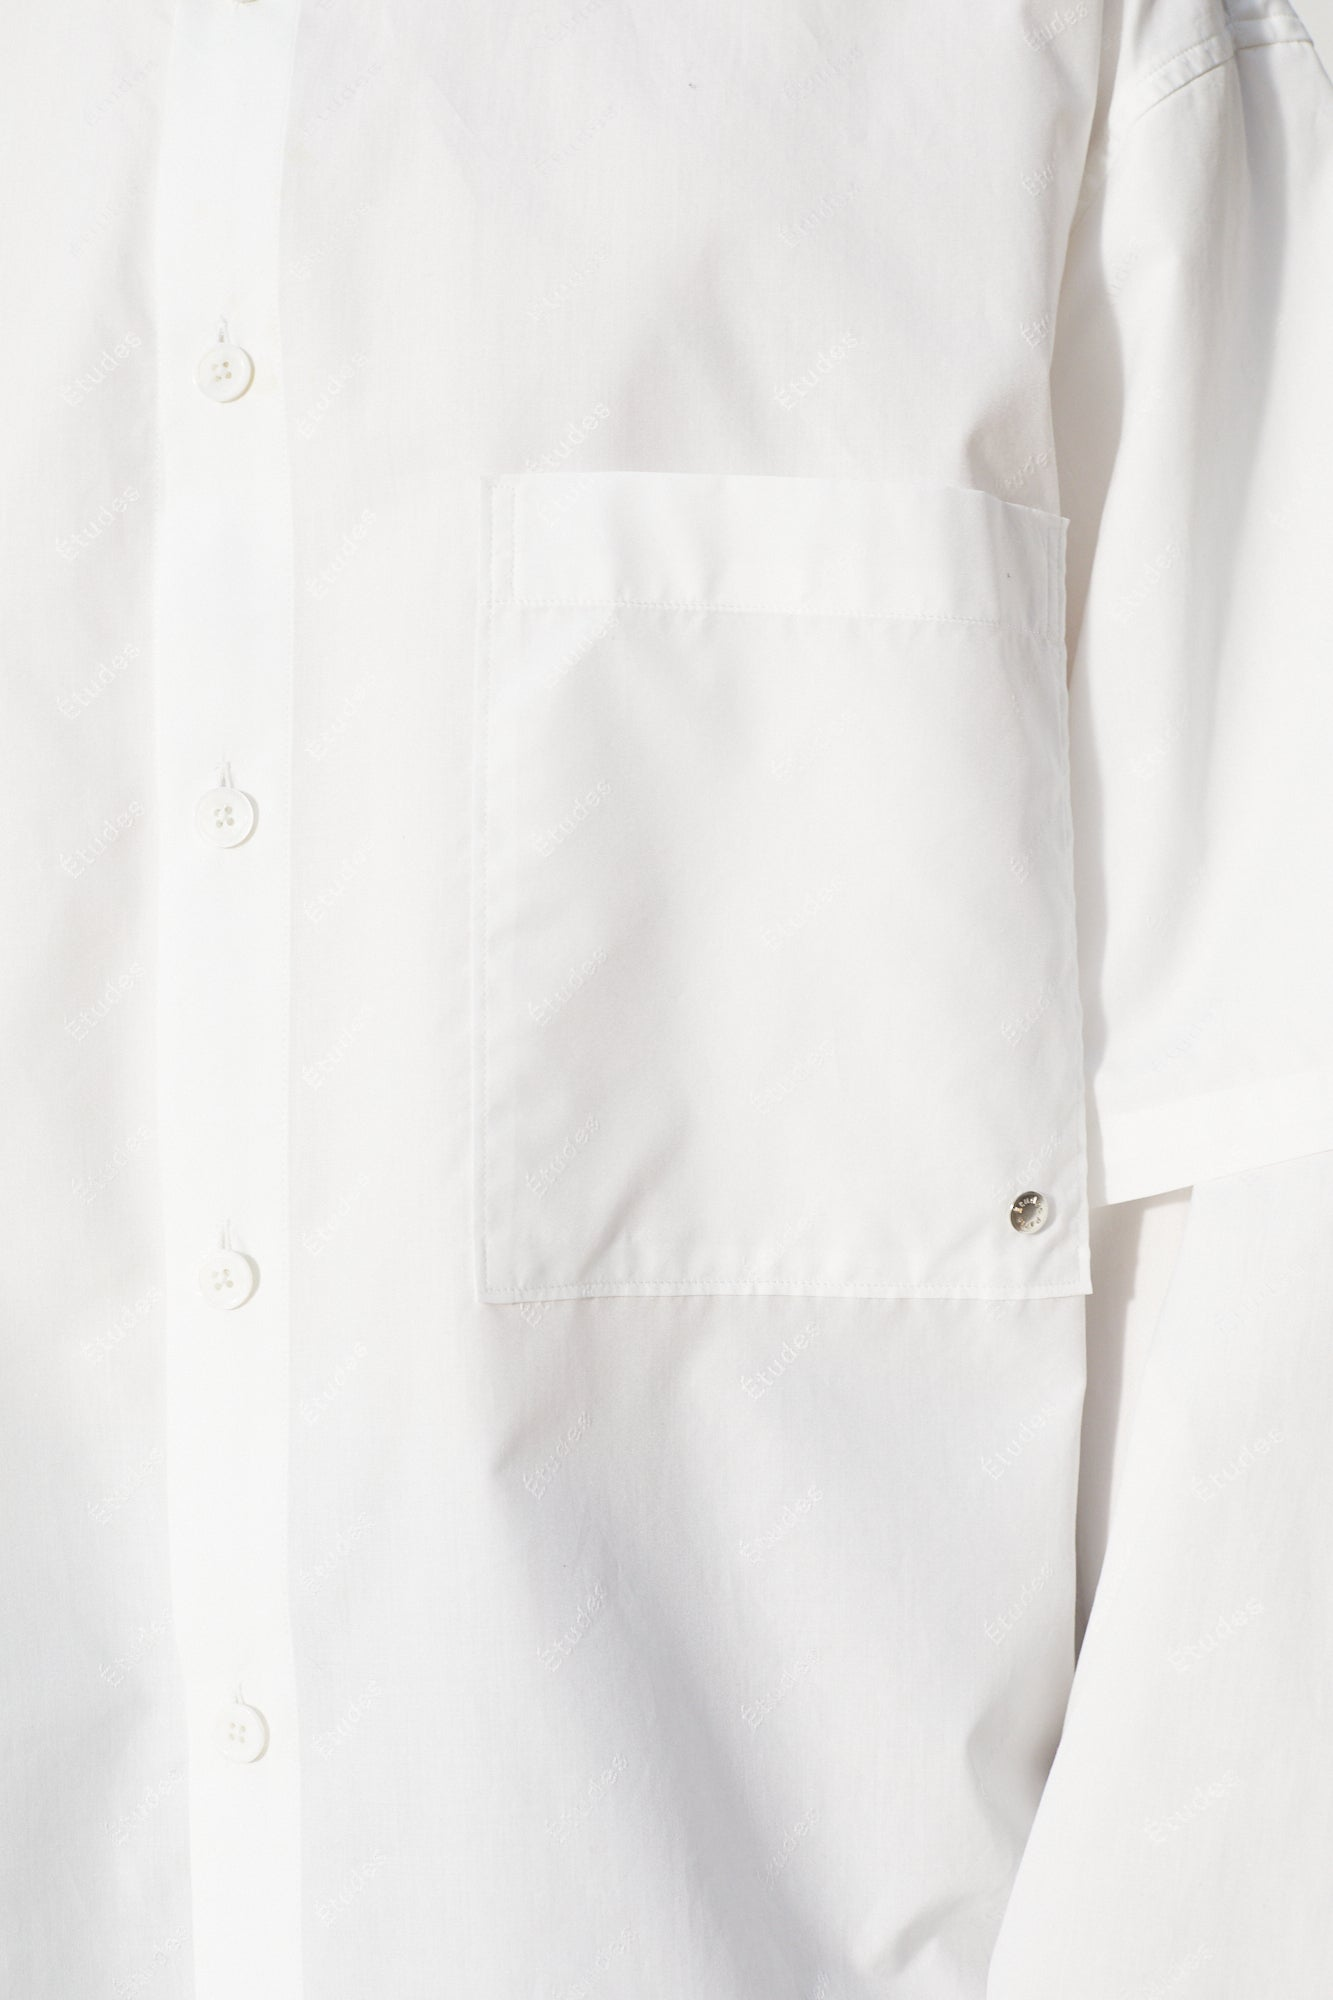 Études Iron Monogram White Shirt 4